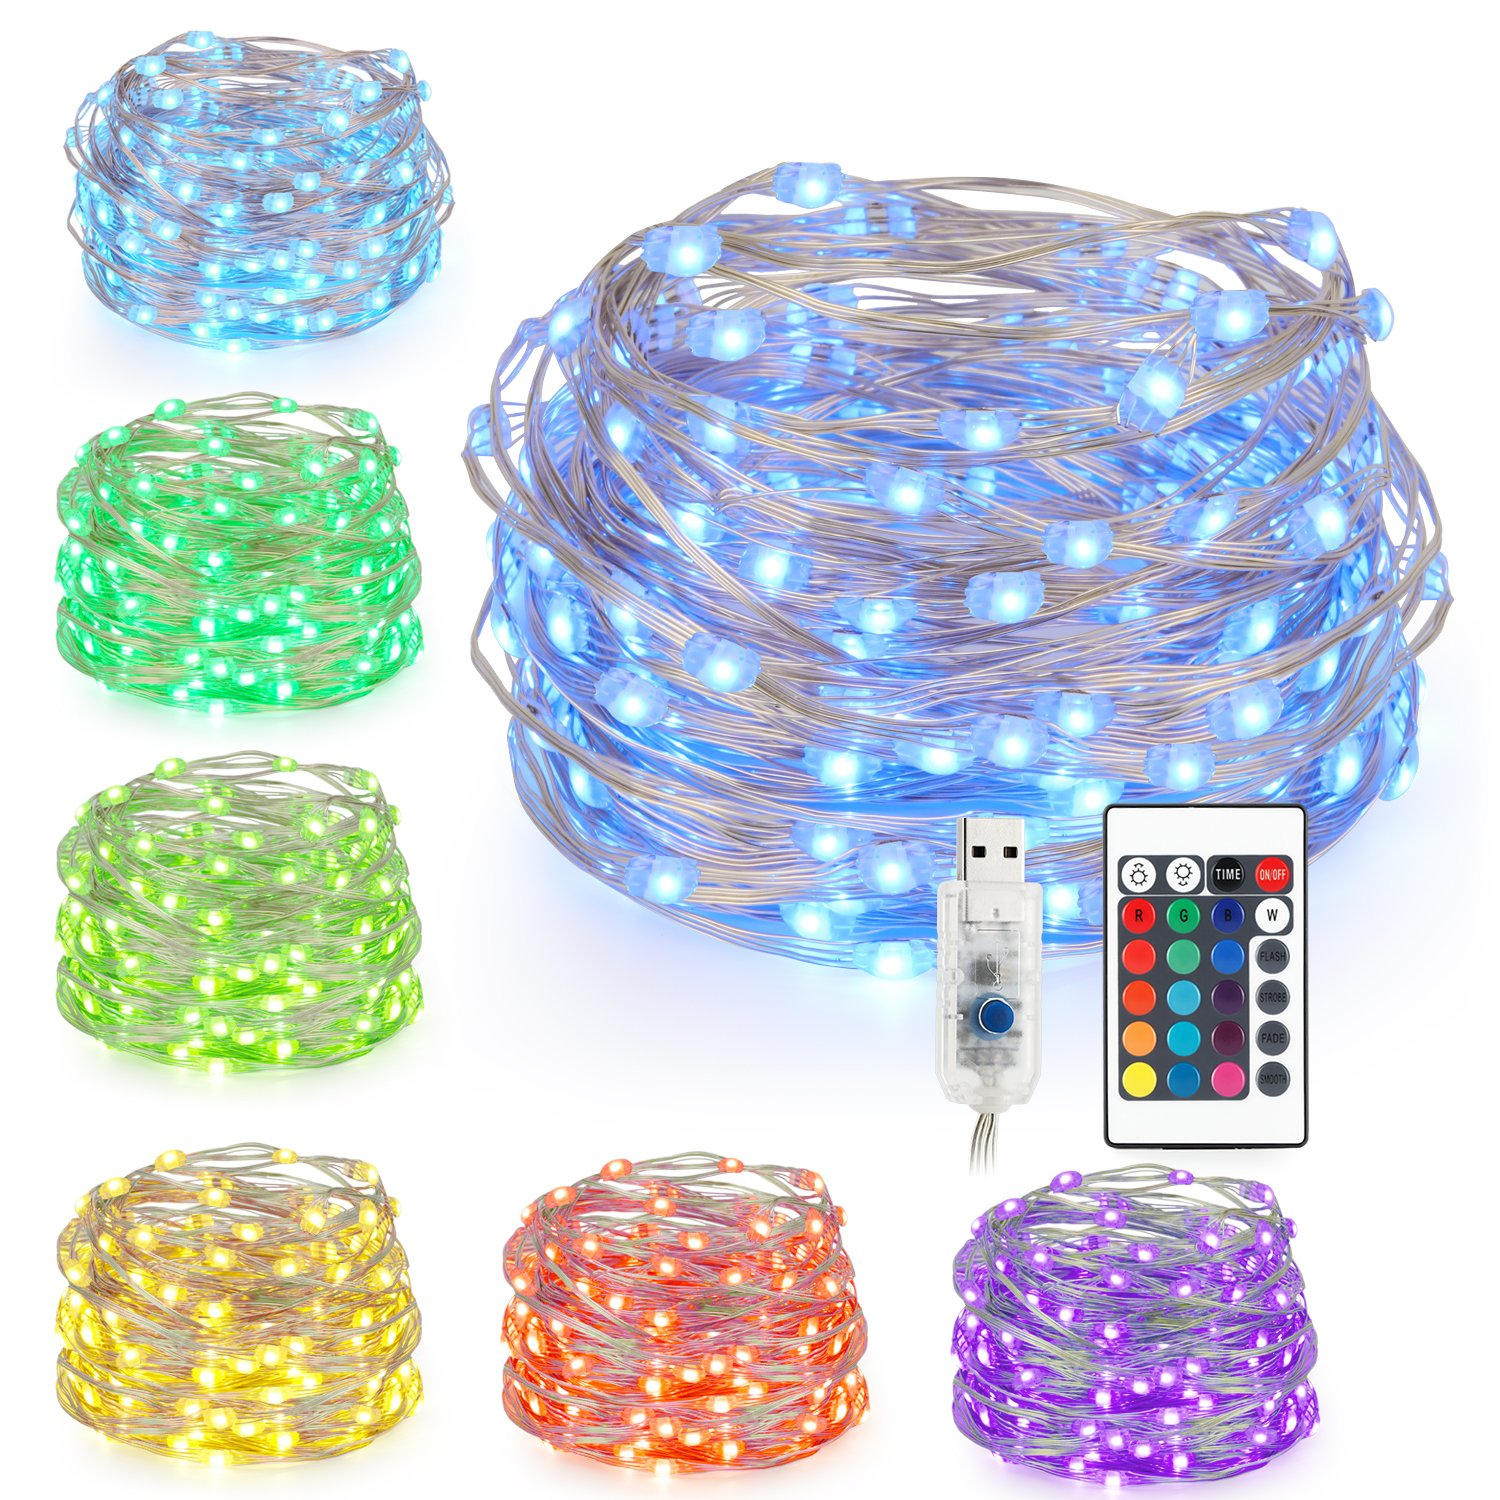 Kohree LED String Lights,USB Powered Multi Color Changing String Lights with Remote,50leds Indoor Decorative Silver Wire Lights for Bedroom,Patio,Outdoor Garden,Stroller,DecorTree.(16.4ft)